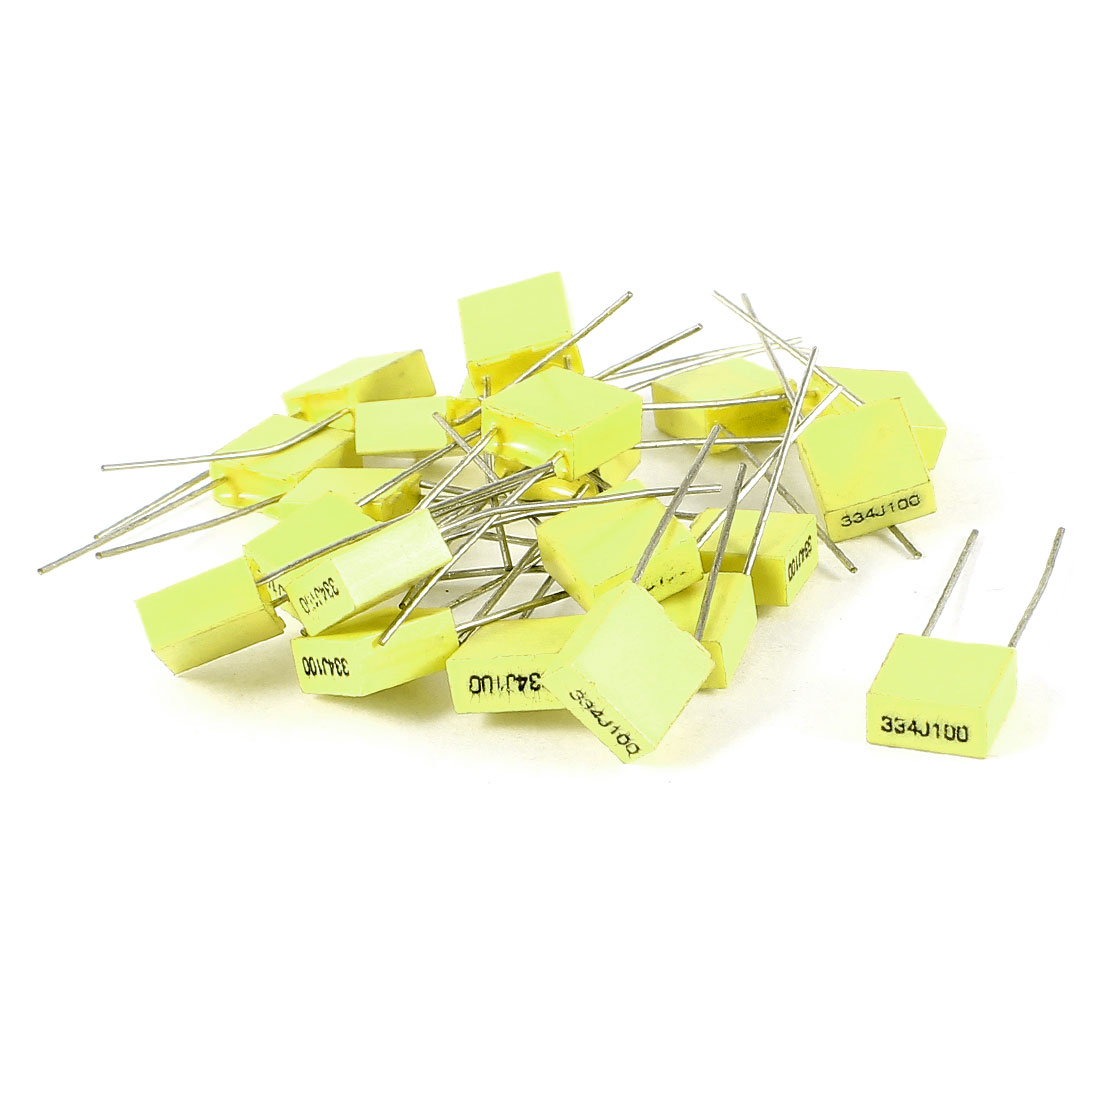 20 Pcs 100V 0.33uF 330NF Radial Lead Box Type Film Correction Capacitors Yellow